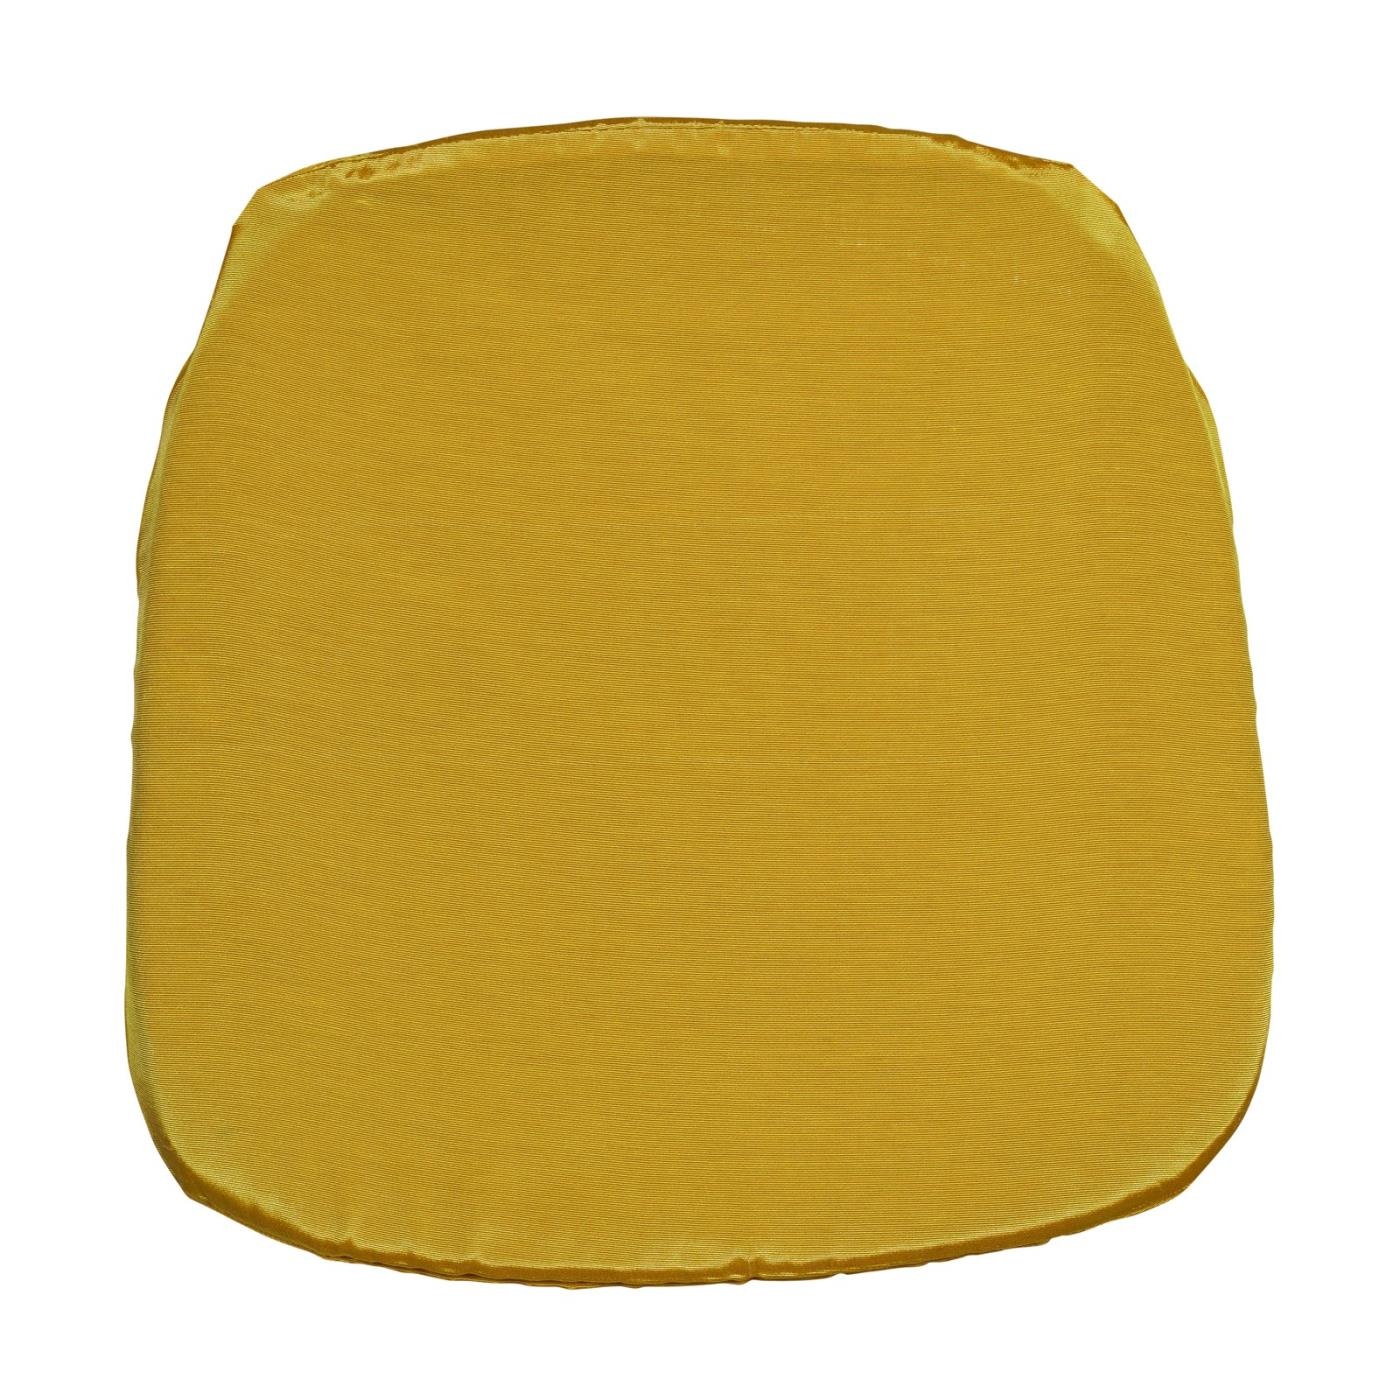 Bengaline Seat Cushion - Lemon